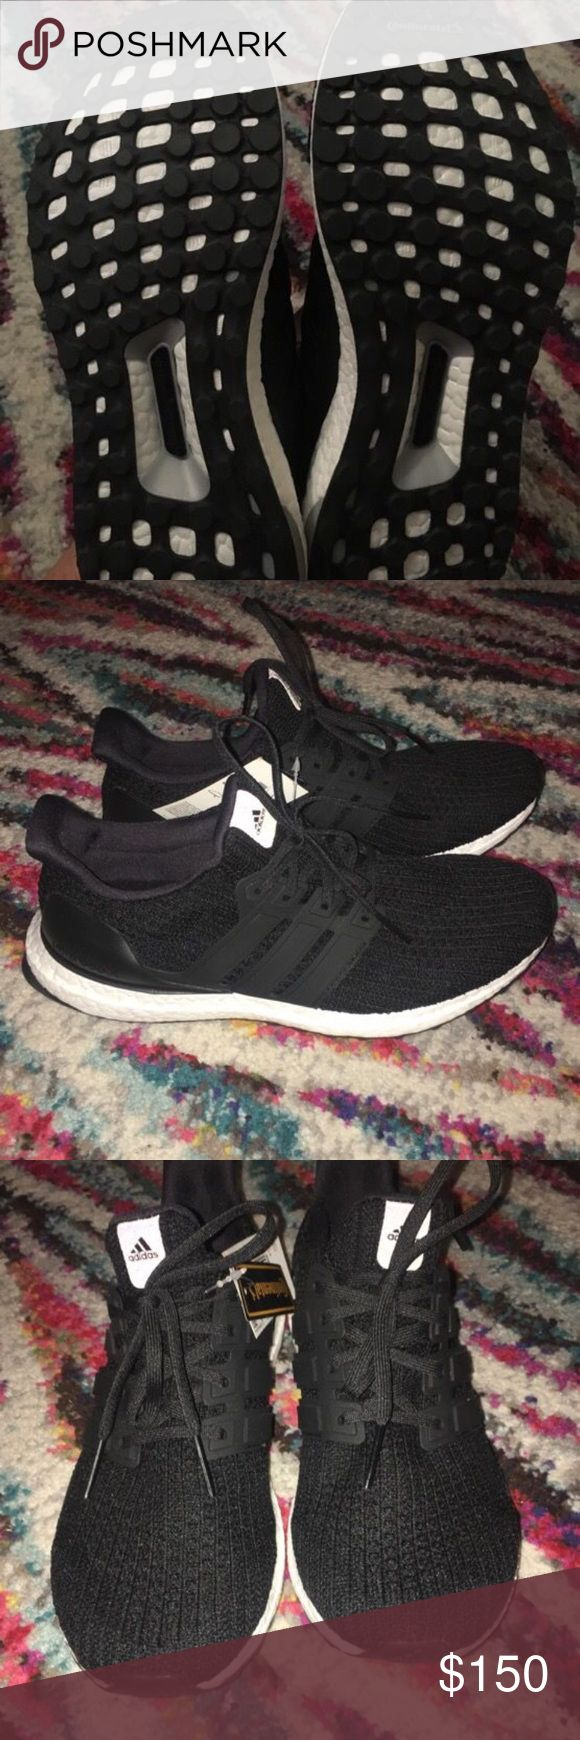 Adidas Ultra Boosts Women's brand new, never worn Adidas Ultra Boosts. Size 9, black - selling because they are too big for me and i can't find the receipt! adidas Shoes Athletic Shoes http://feedproxy.google.com/fashionshoes1